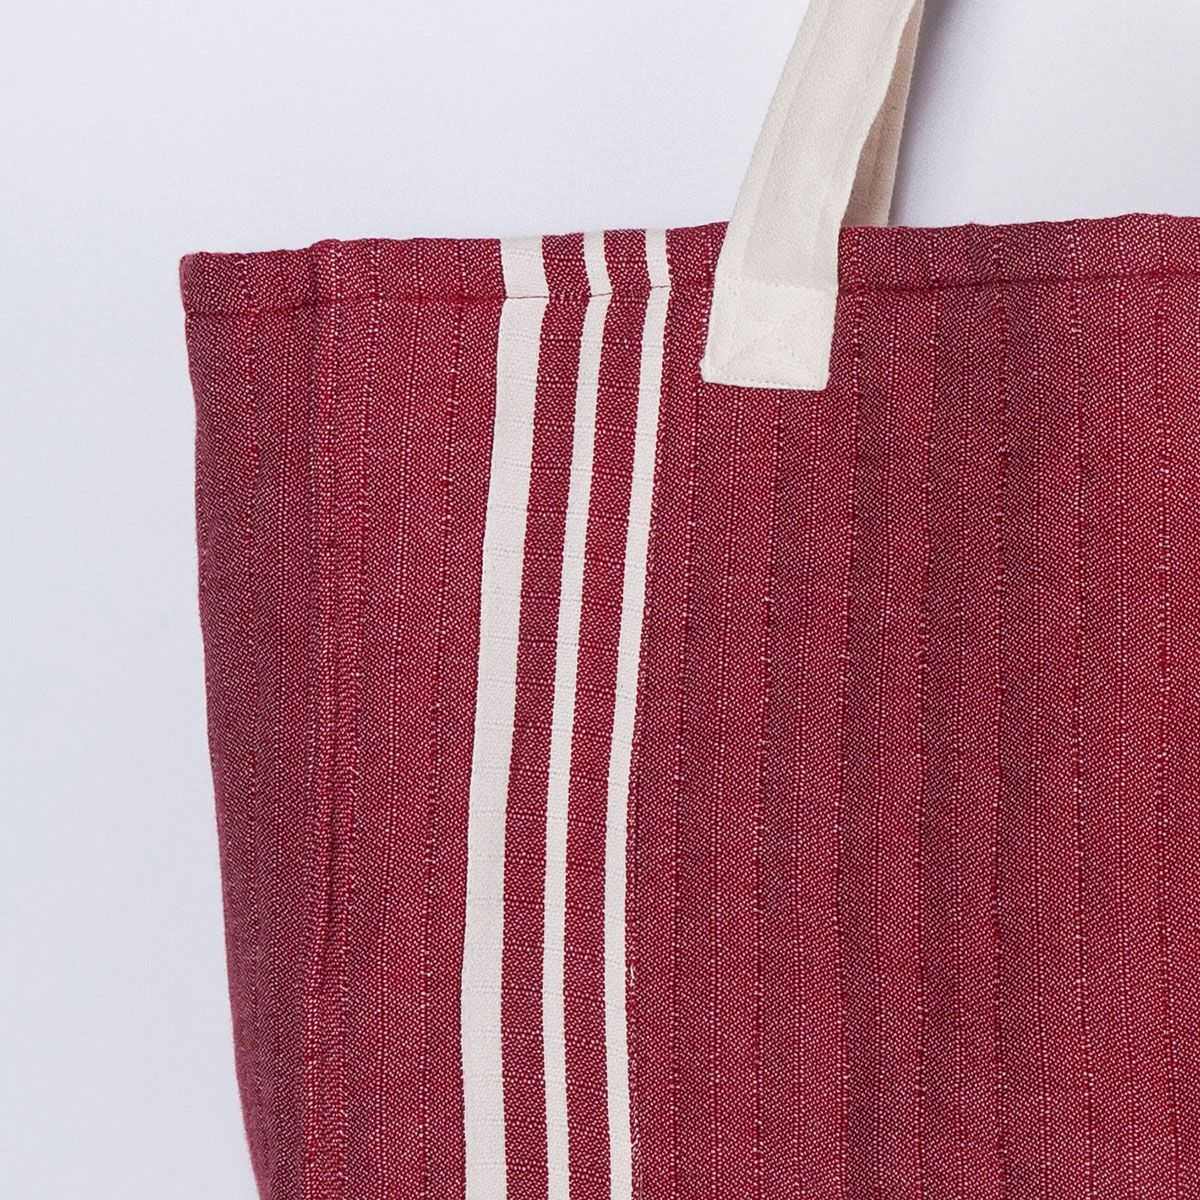 Tote Bag - Sultan / Bordeaux